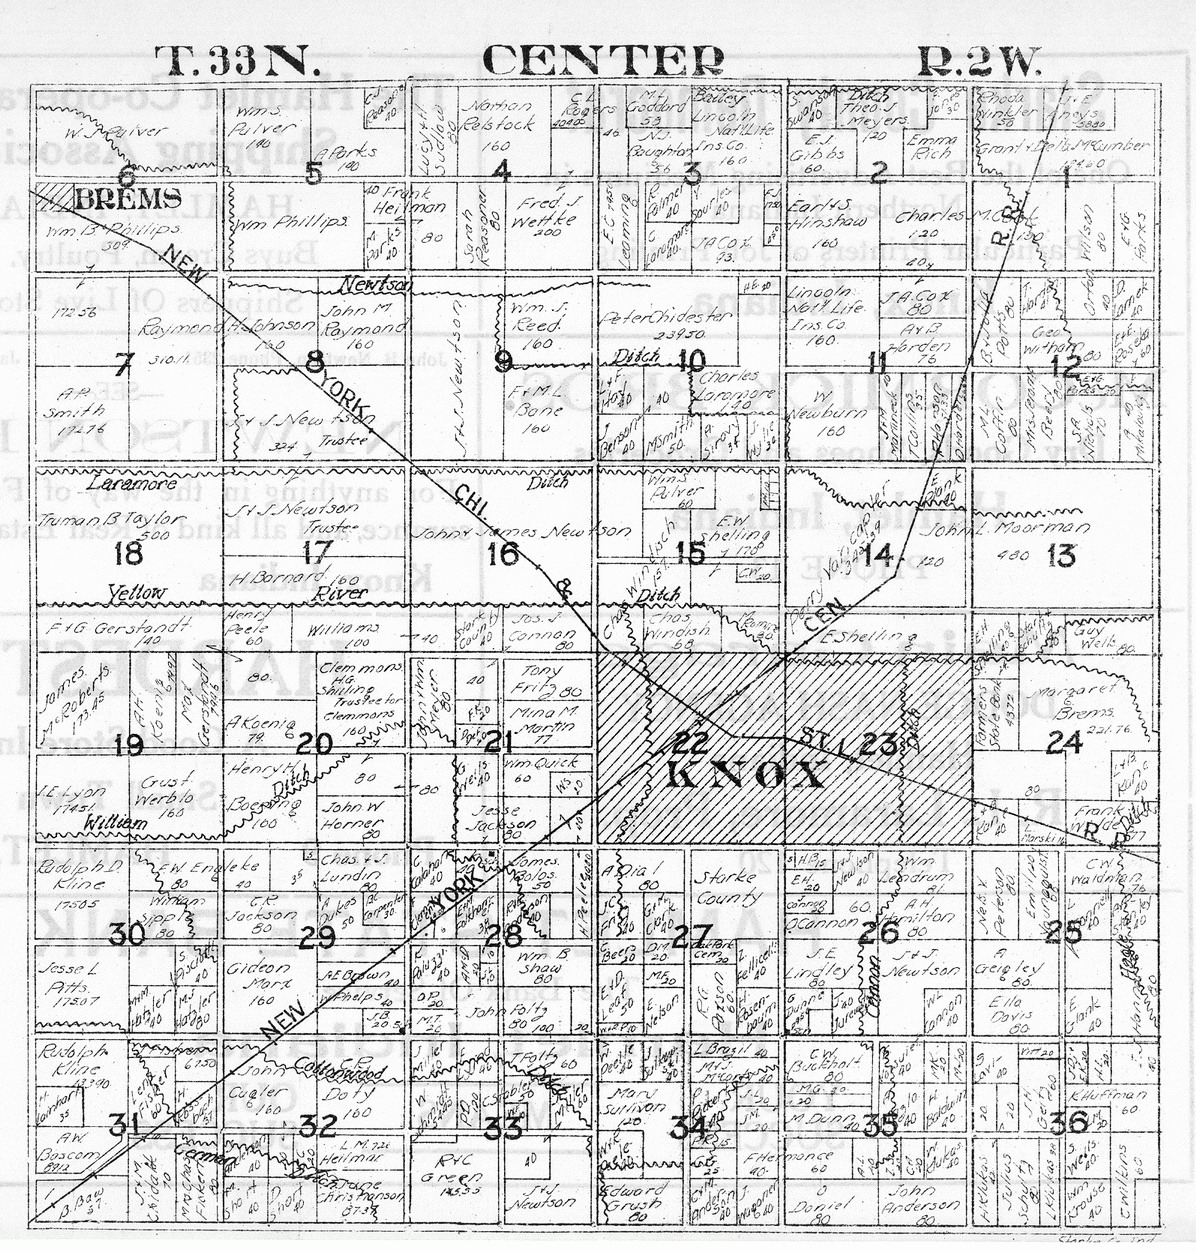 township plat maps.  township plat maps  starke county historical photos  documents